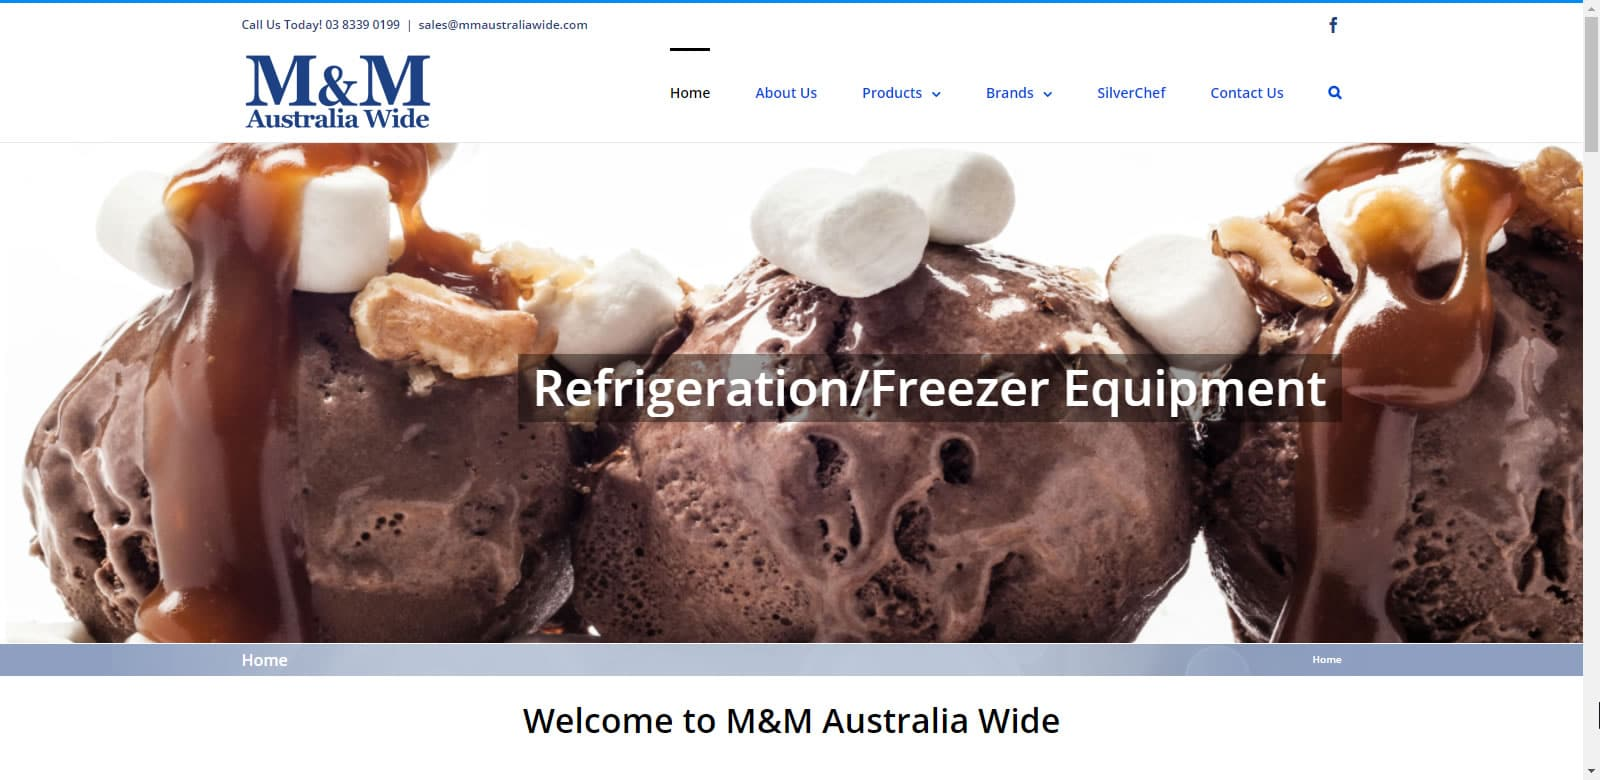 M&M Australia Wide Web Design ⋆ Award Winning Website Designs